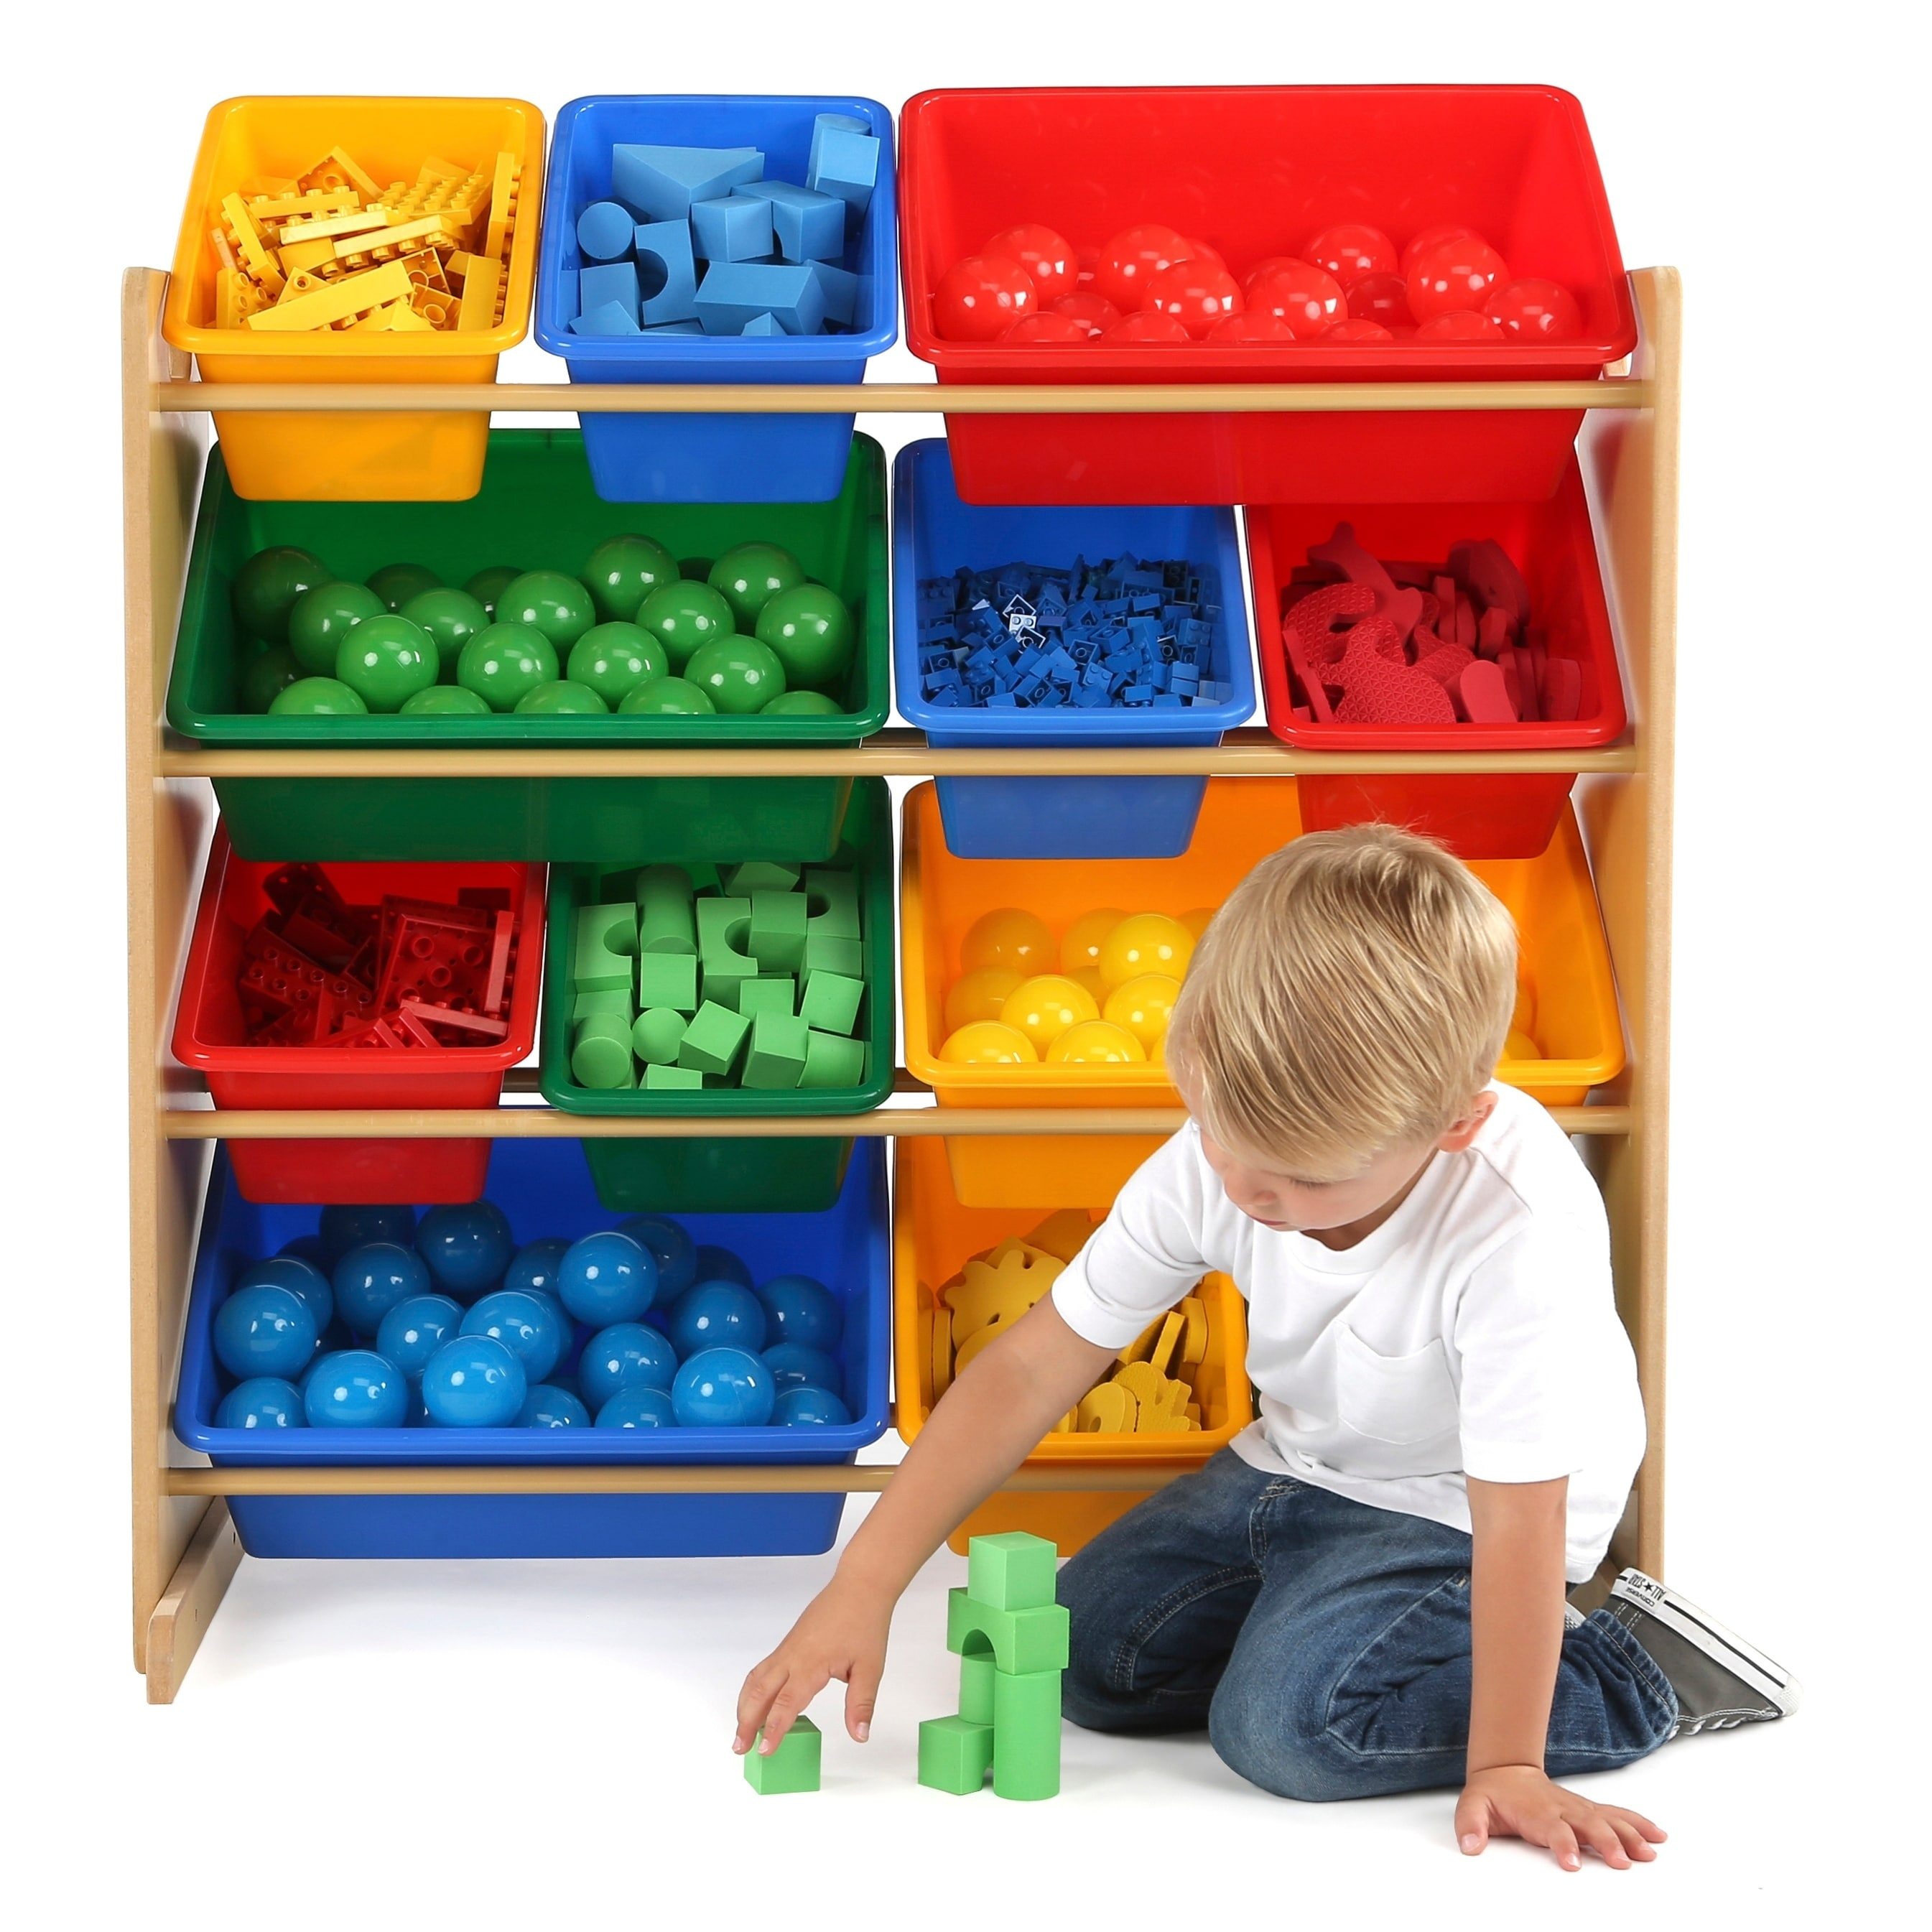 Tot Tutors Kids Wood Toy Storage Organizer With 12 Plastic